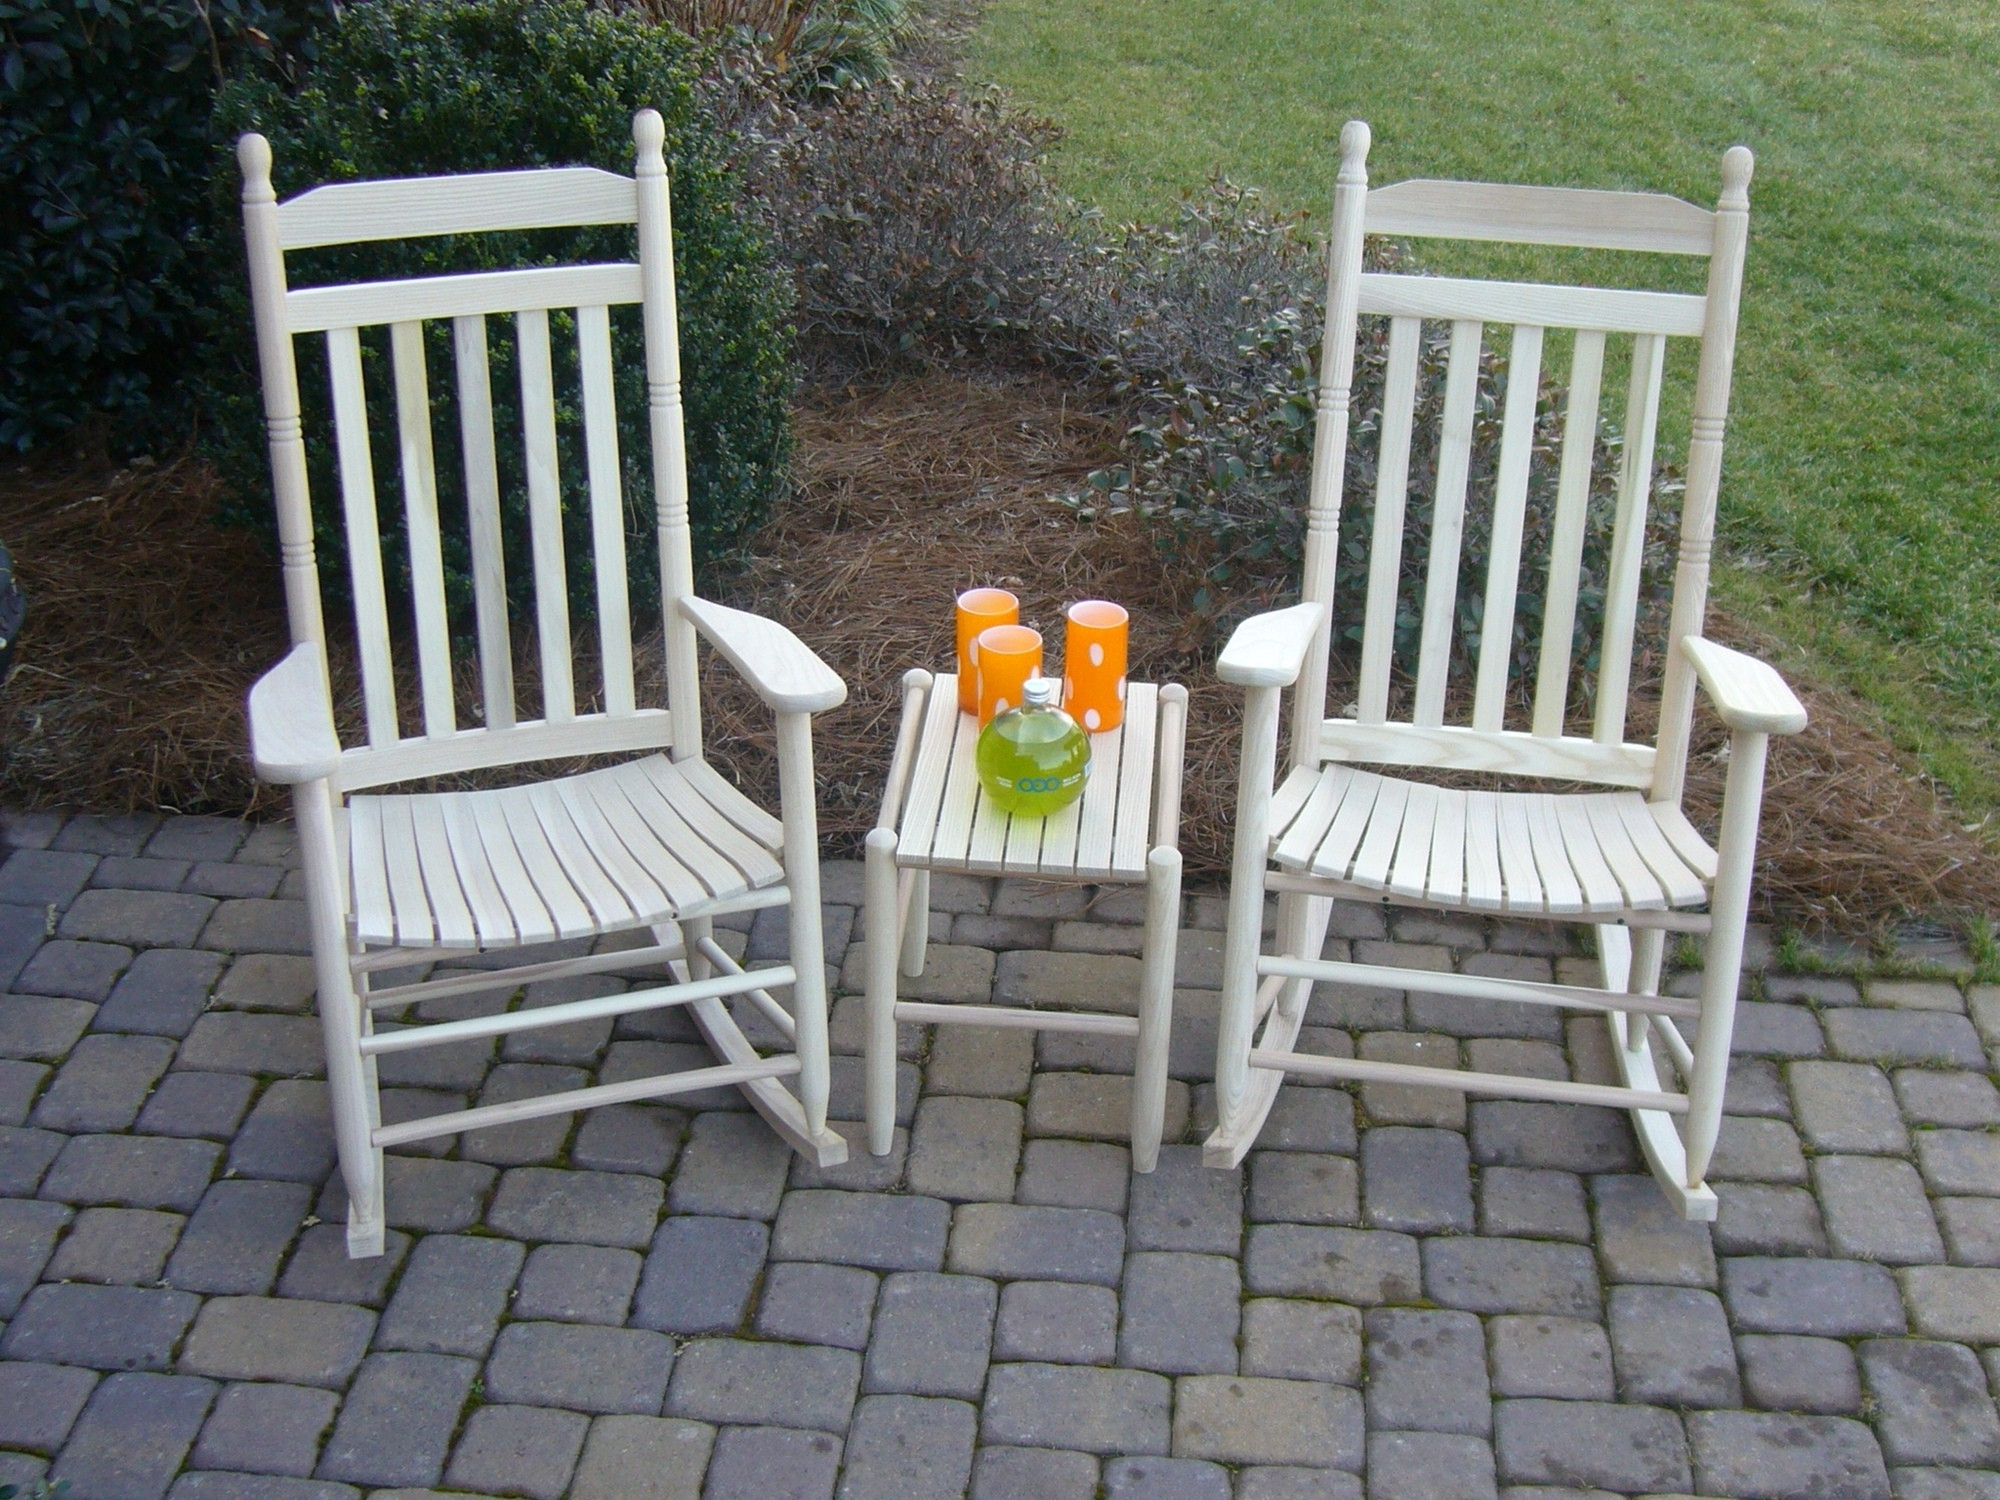 Outdoor Rocking Chairs With Table Throughout Recent Extraordinary Porch Table And Chairs Inspirational Furniture Outdoor (View 11 of 15)